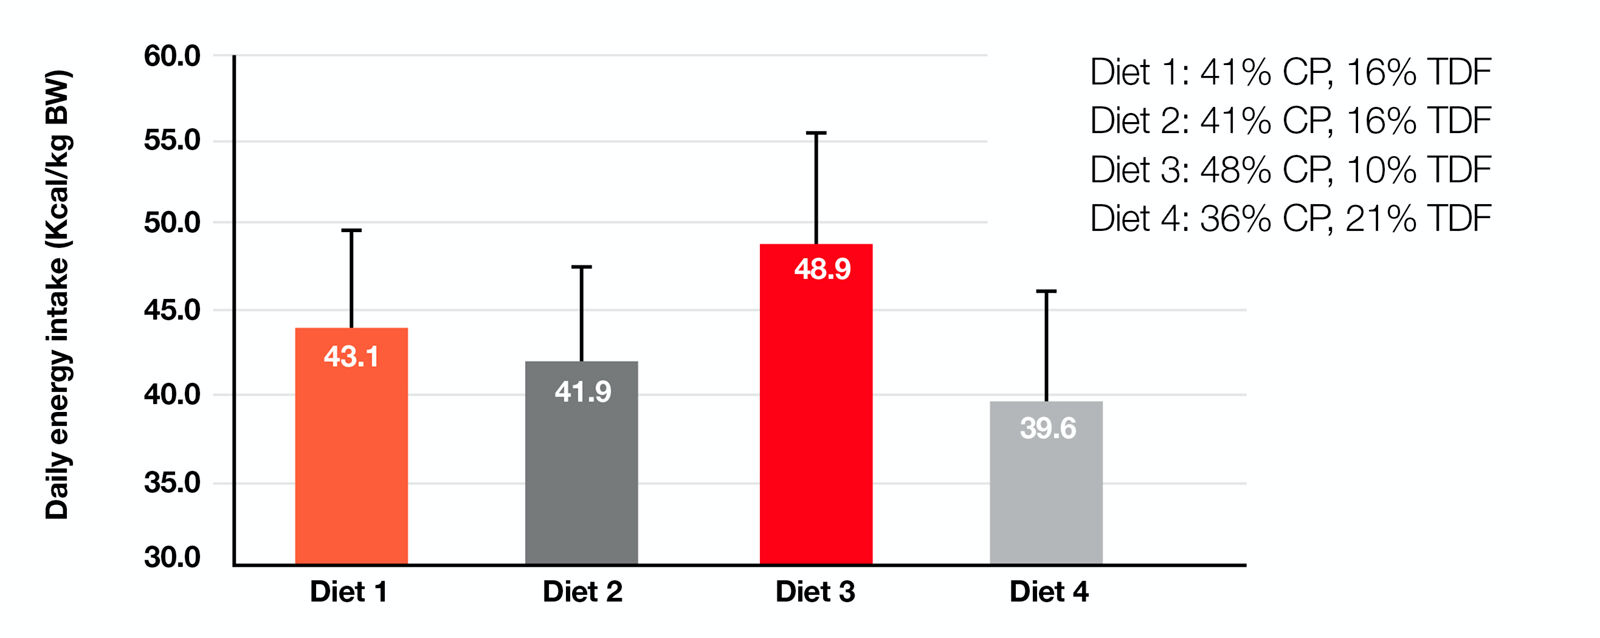 Figure 5. Level and source of fibers can affect energy intake in cats when fed ad libitum. Diet 2 contained a fiber with a high water binding property which rapidly binds water in the stomach and thus increases satiety, therefore lowering the energy intake (20). CP = crude protein TDF = total dietary fiber